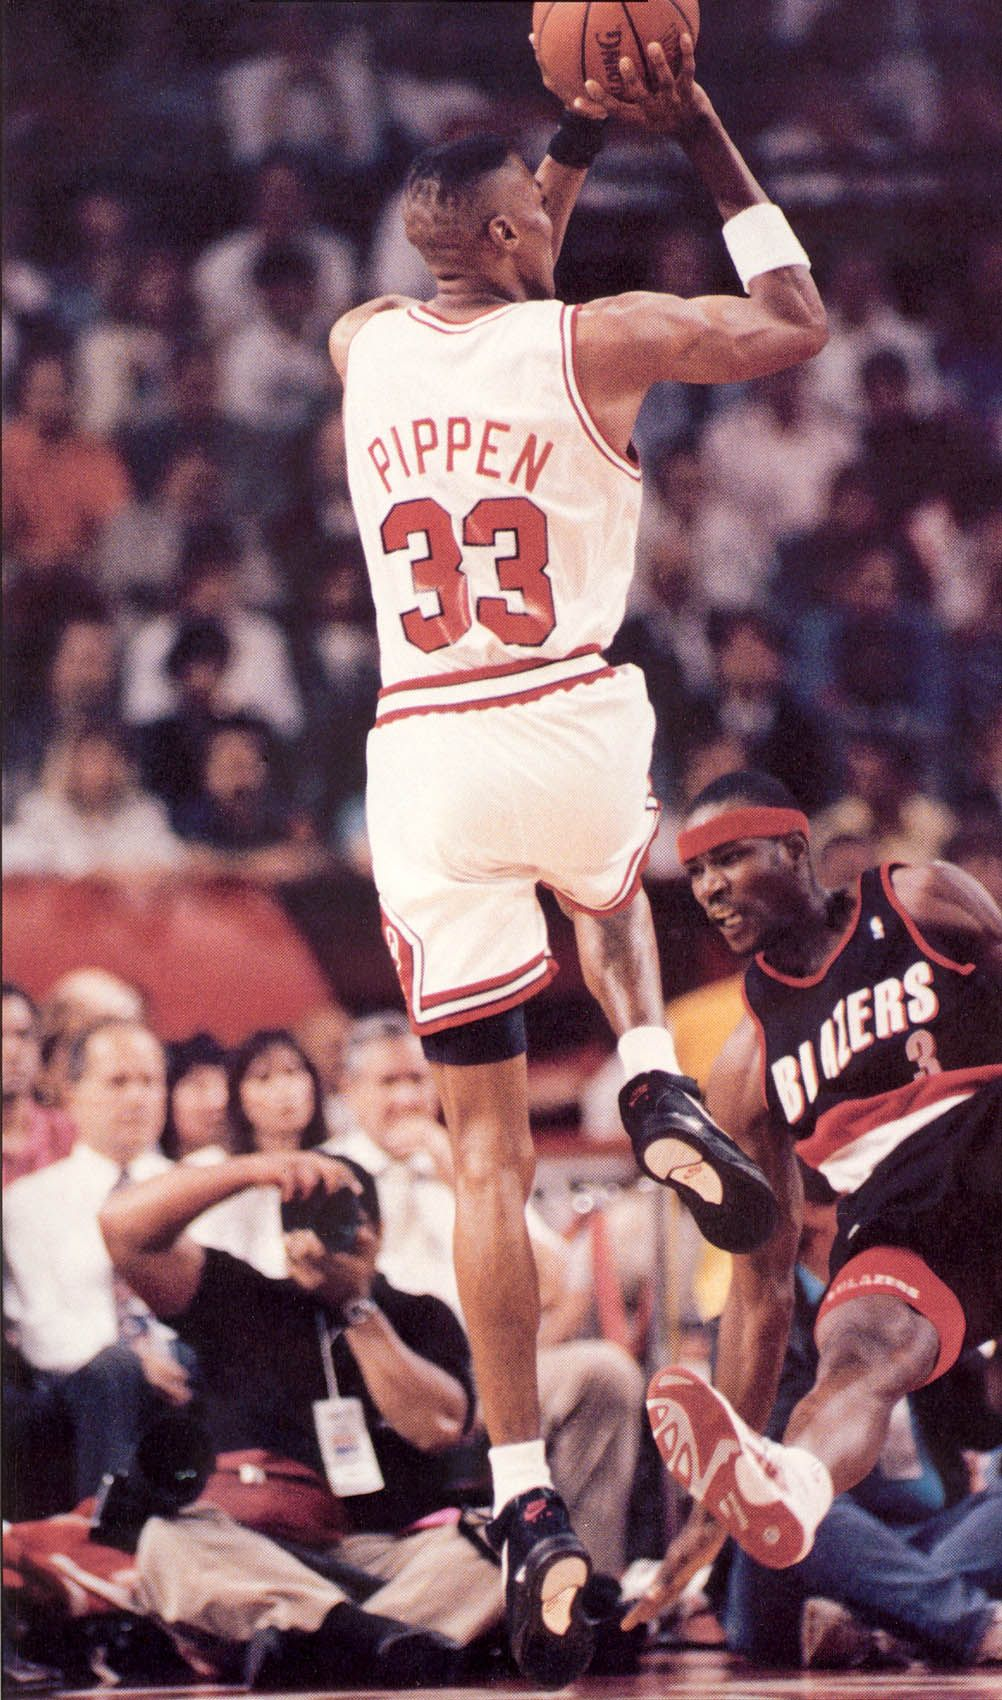 91 92 Finals Scottie Pippen Jumper Cliff Robinson